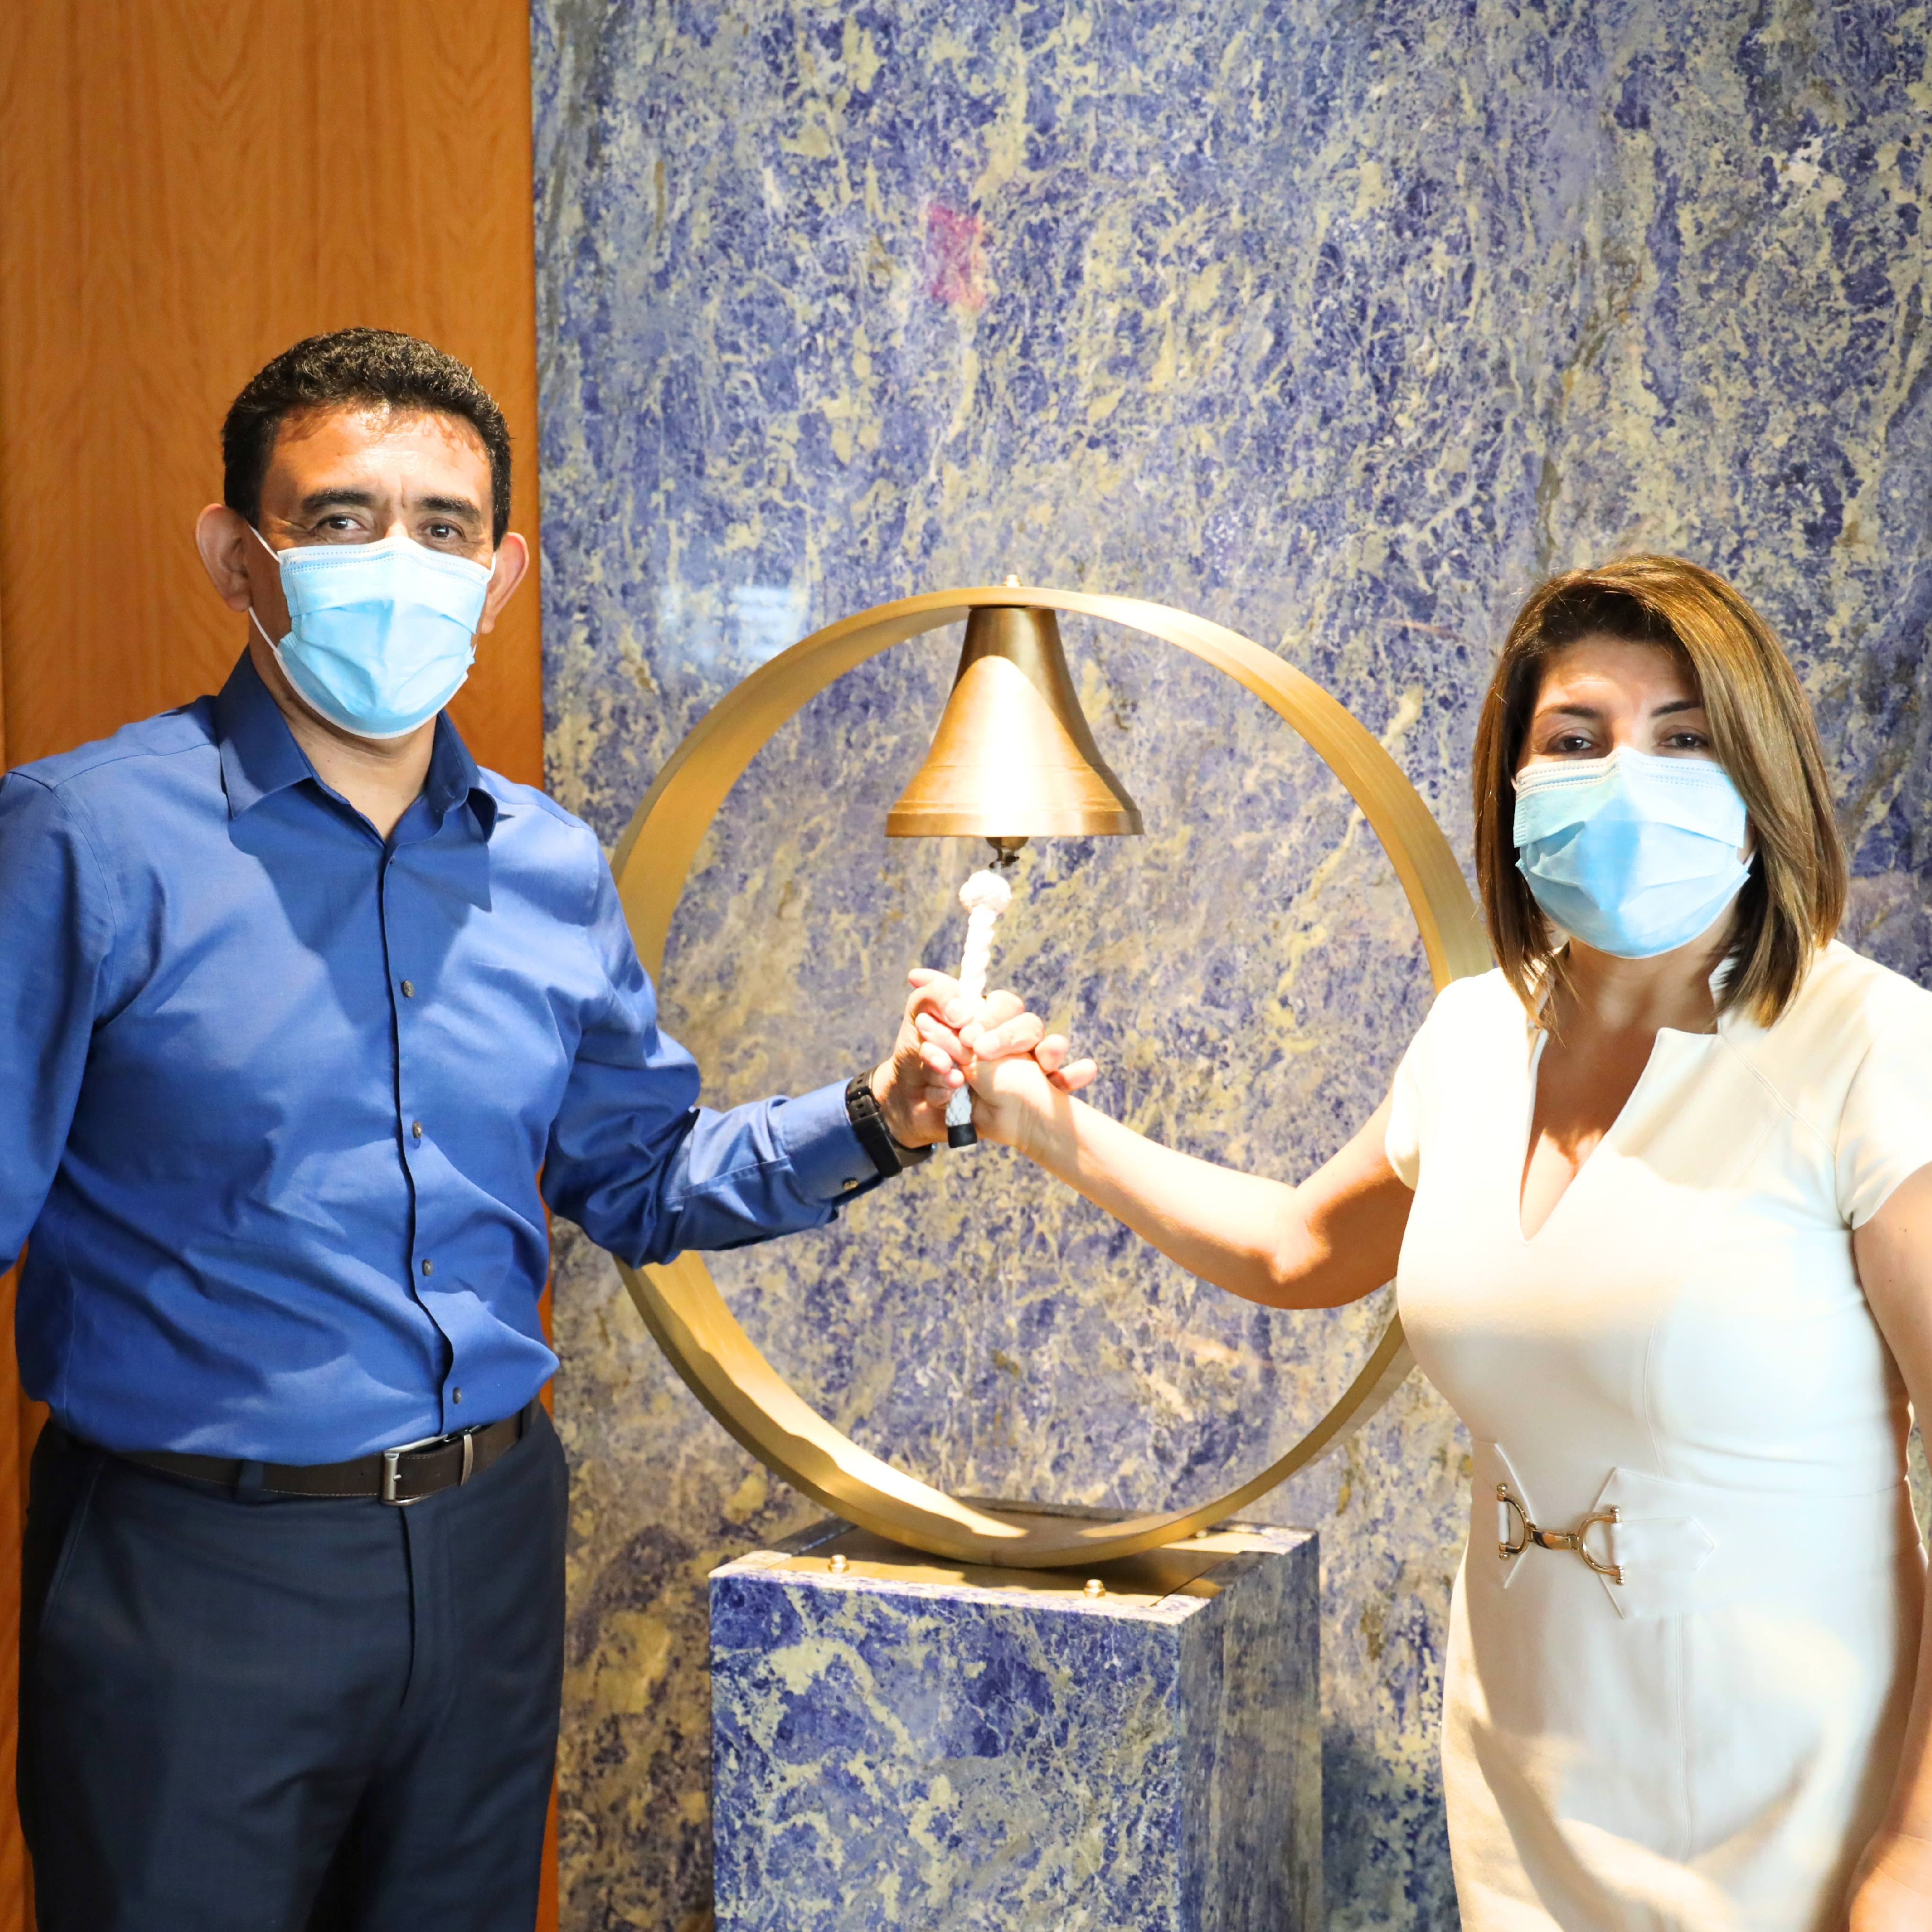 Mayo Clinic Florida cancer patient Eduardo Aguero with his family after final chemo treatment, all wearing protective facemasks, while he rings the bell because his treatment is completed